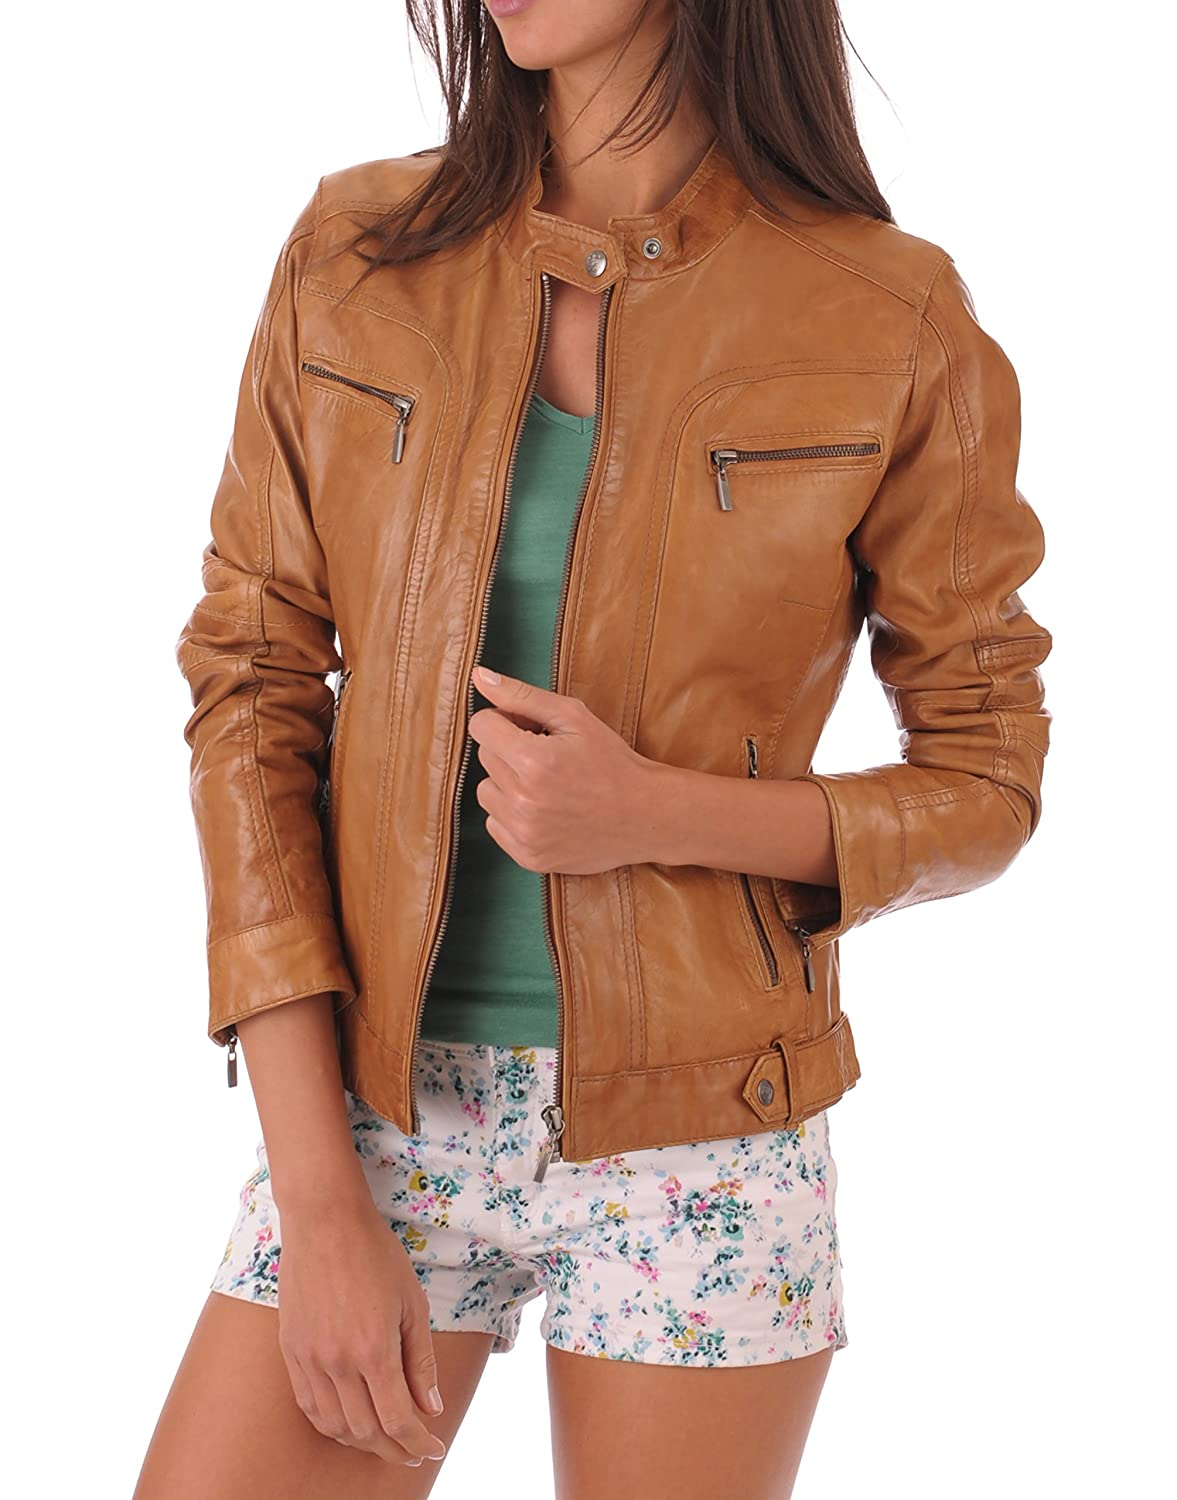 Brown11rc DOLLY LAMB 100% Leather Jacket for Women  Round Collar, Slim Fit & Quilted  Moto, Bomber, Biker Winter Casual Wear